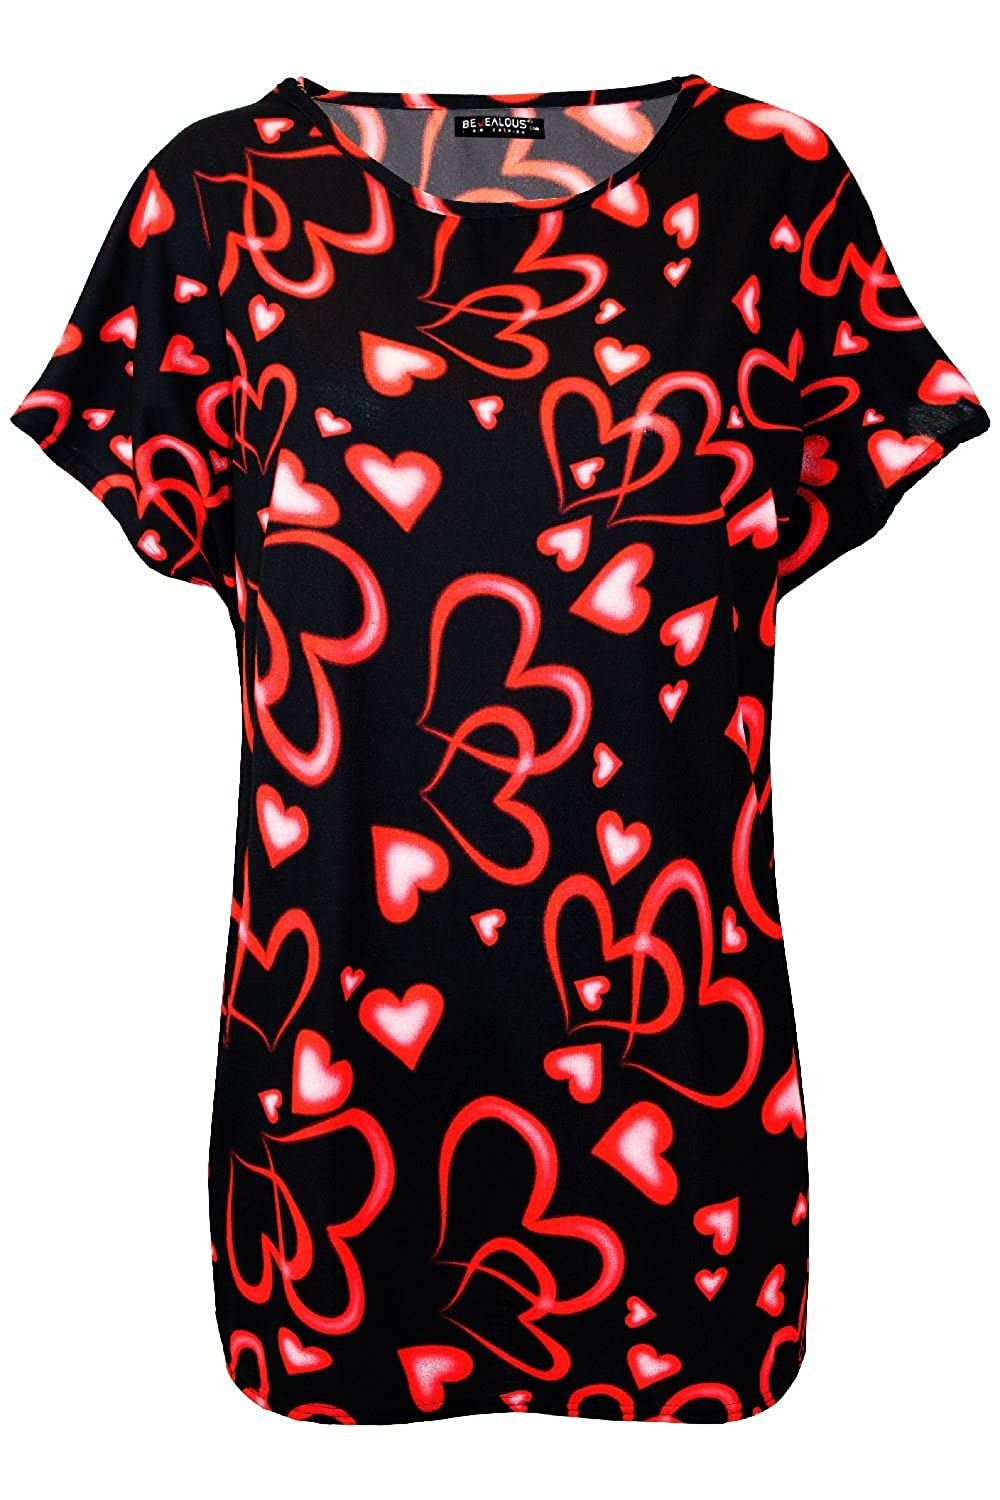 Womens Ladies Oversized Valentines Floral Love Heart Baggy Batwing T Shirt Top